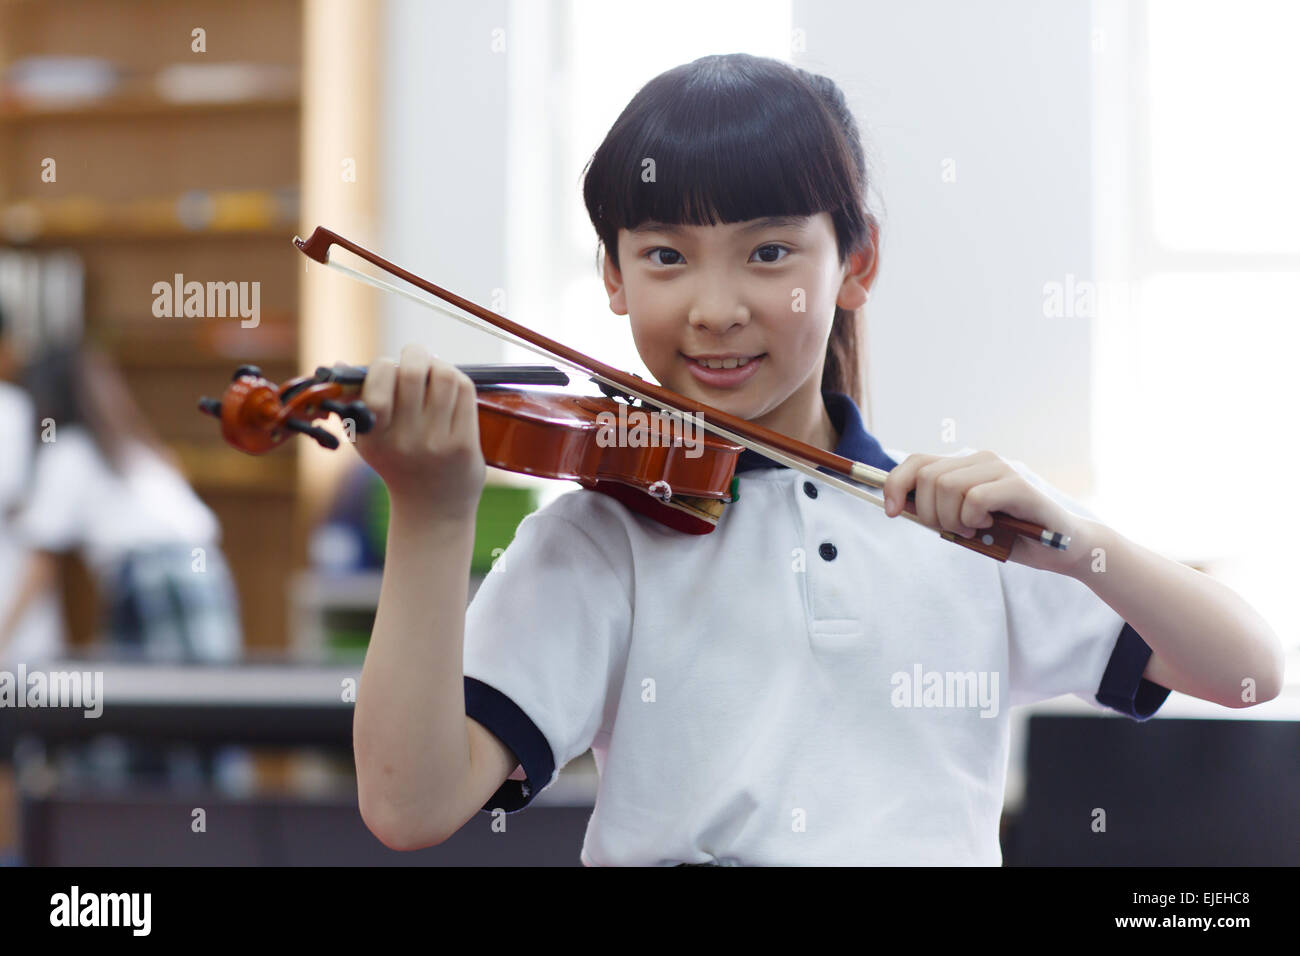 Primary school students in the violin - Stock Image